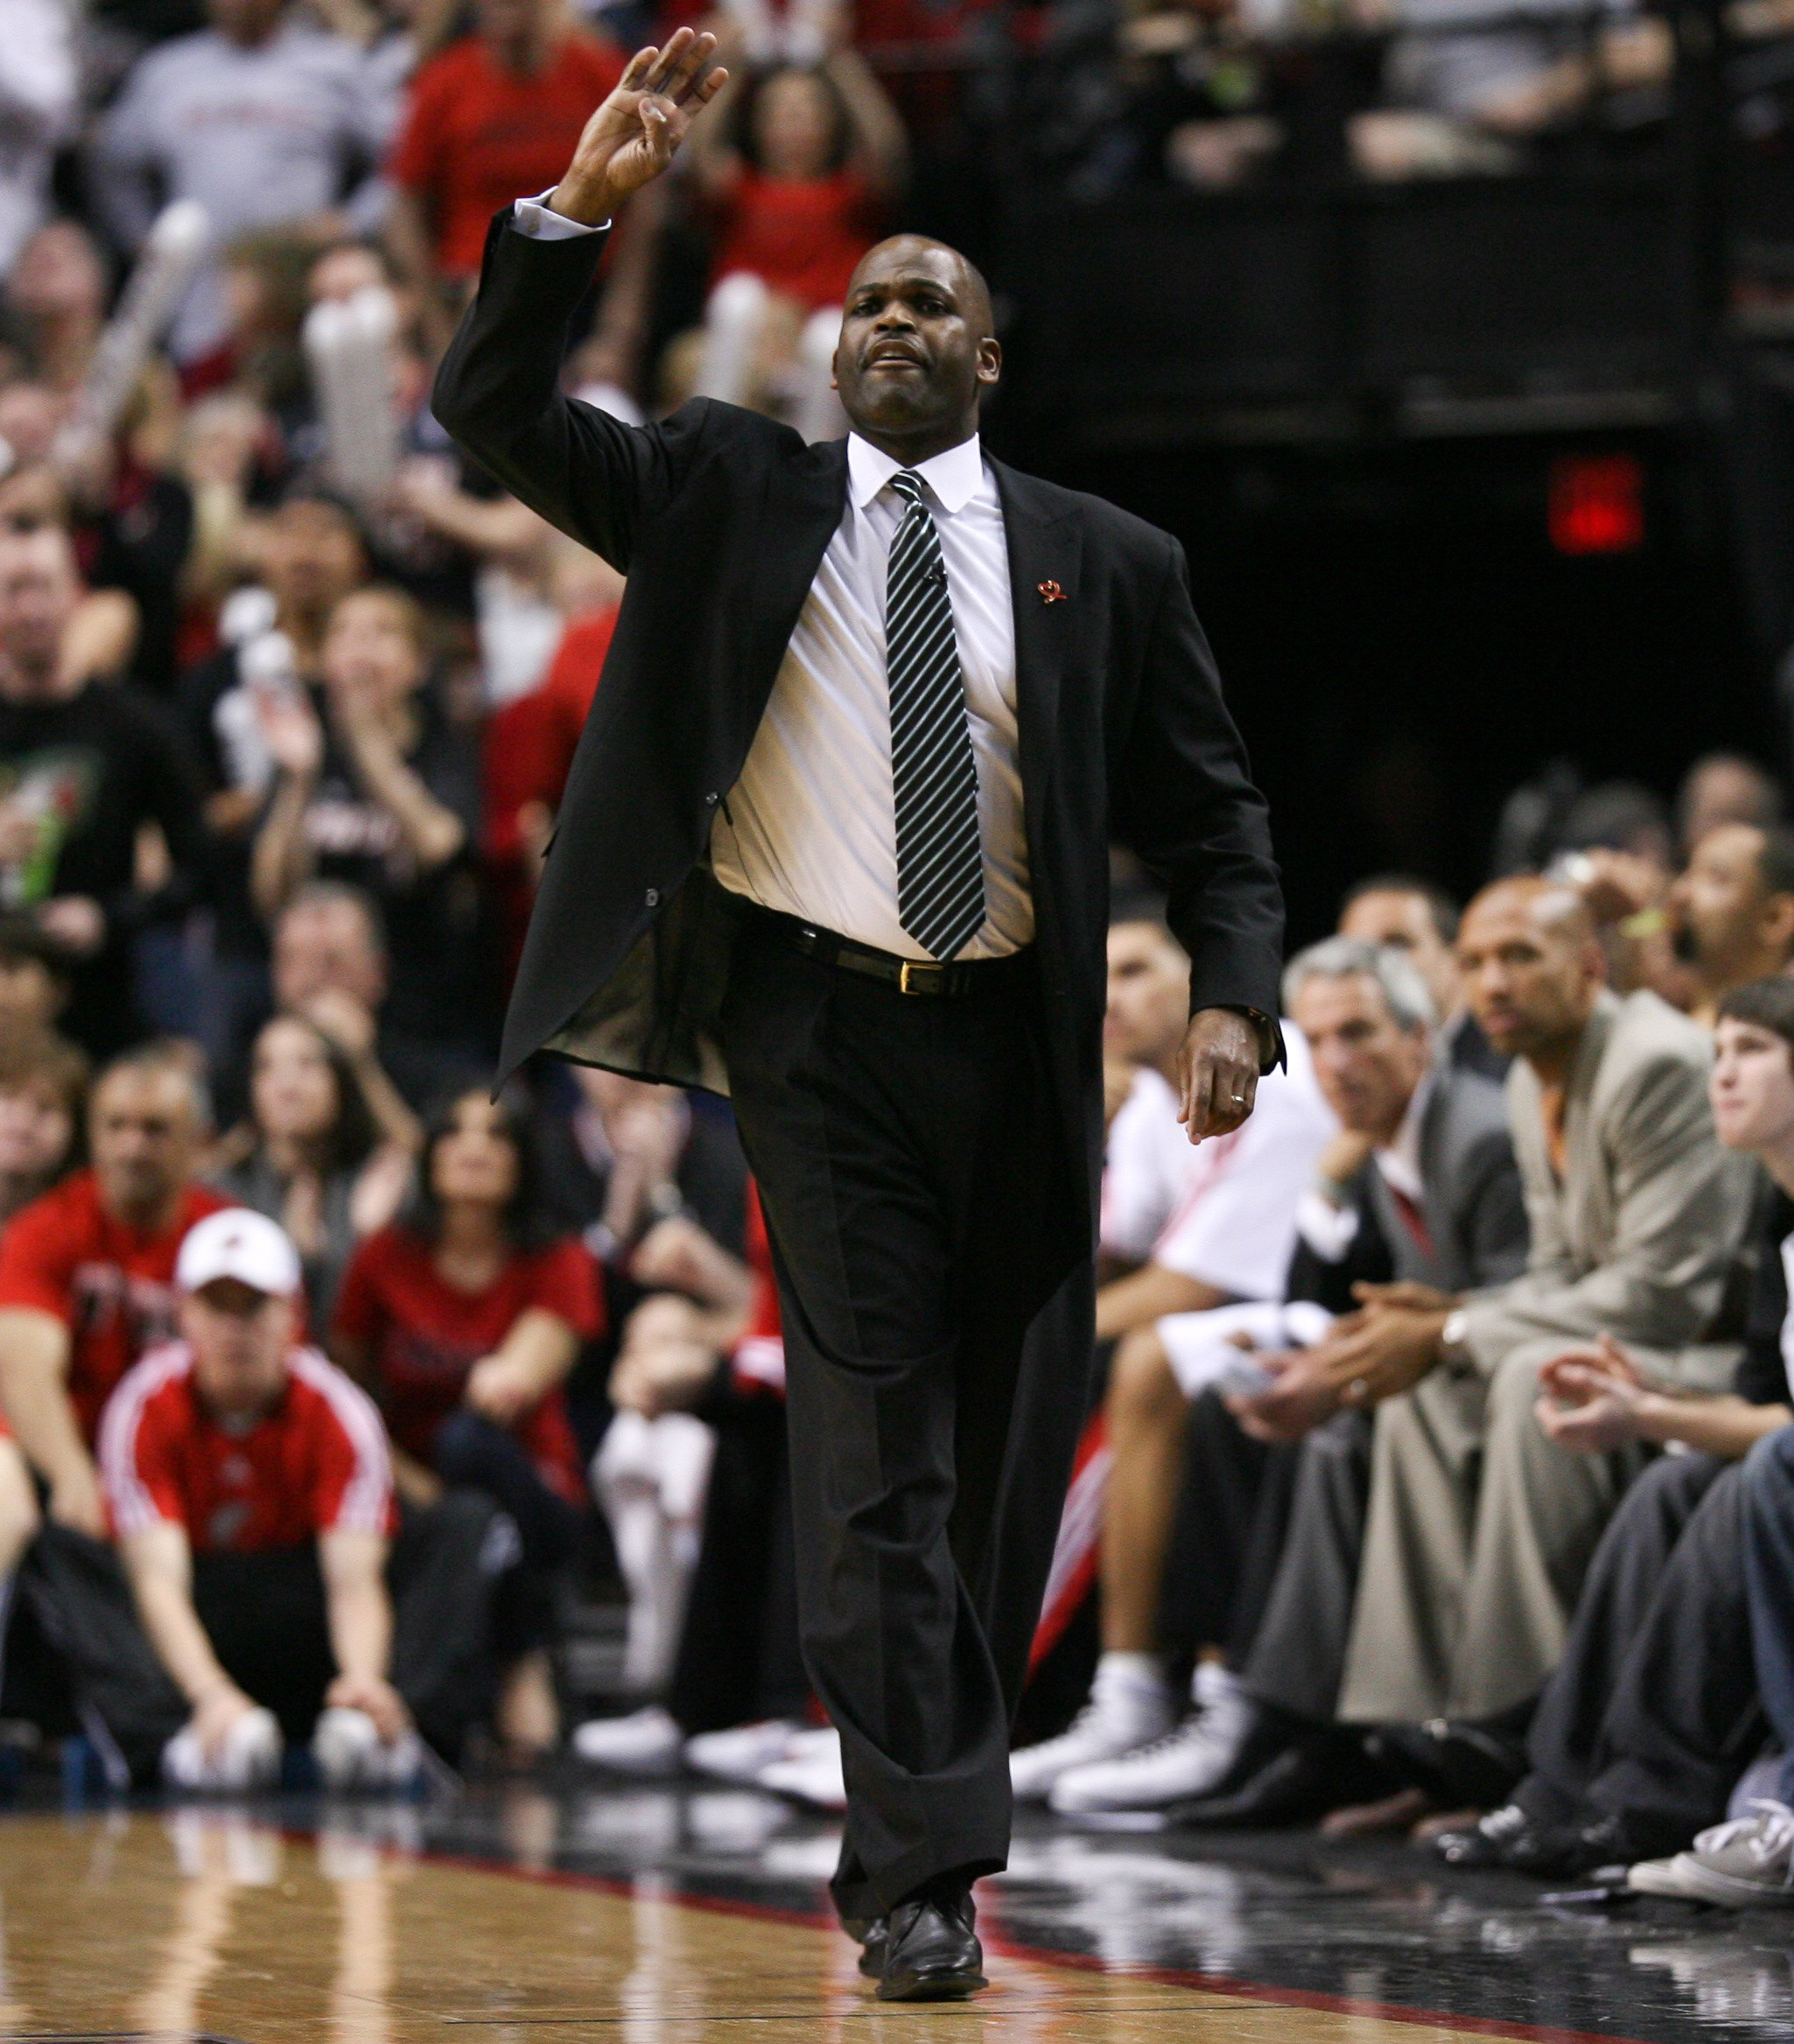 PORTLAND, OR - APRIL 24:  Head coach Nate McMillan of the Portland Trail Blazers calls a play against the Phoenix Suns during Game Four of the Western Conference Quarterfinals of the NBA Playoffs on April 24, 2010 at the Rose Garden in Portland, Oregon. N